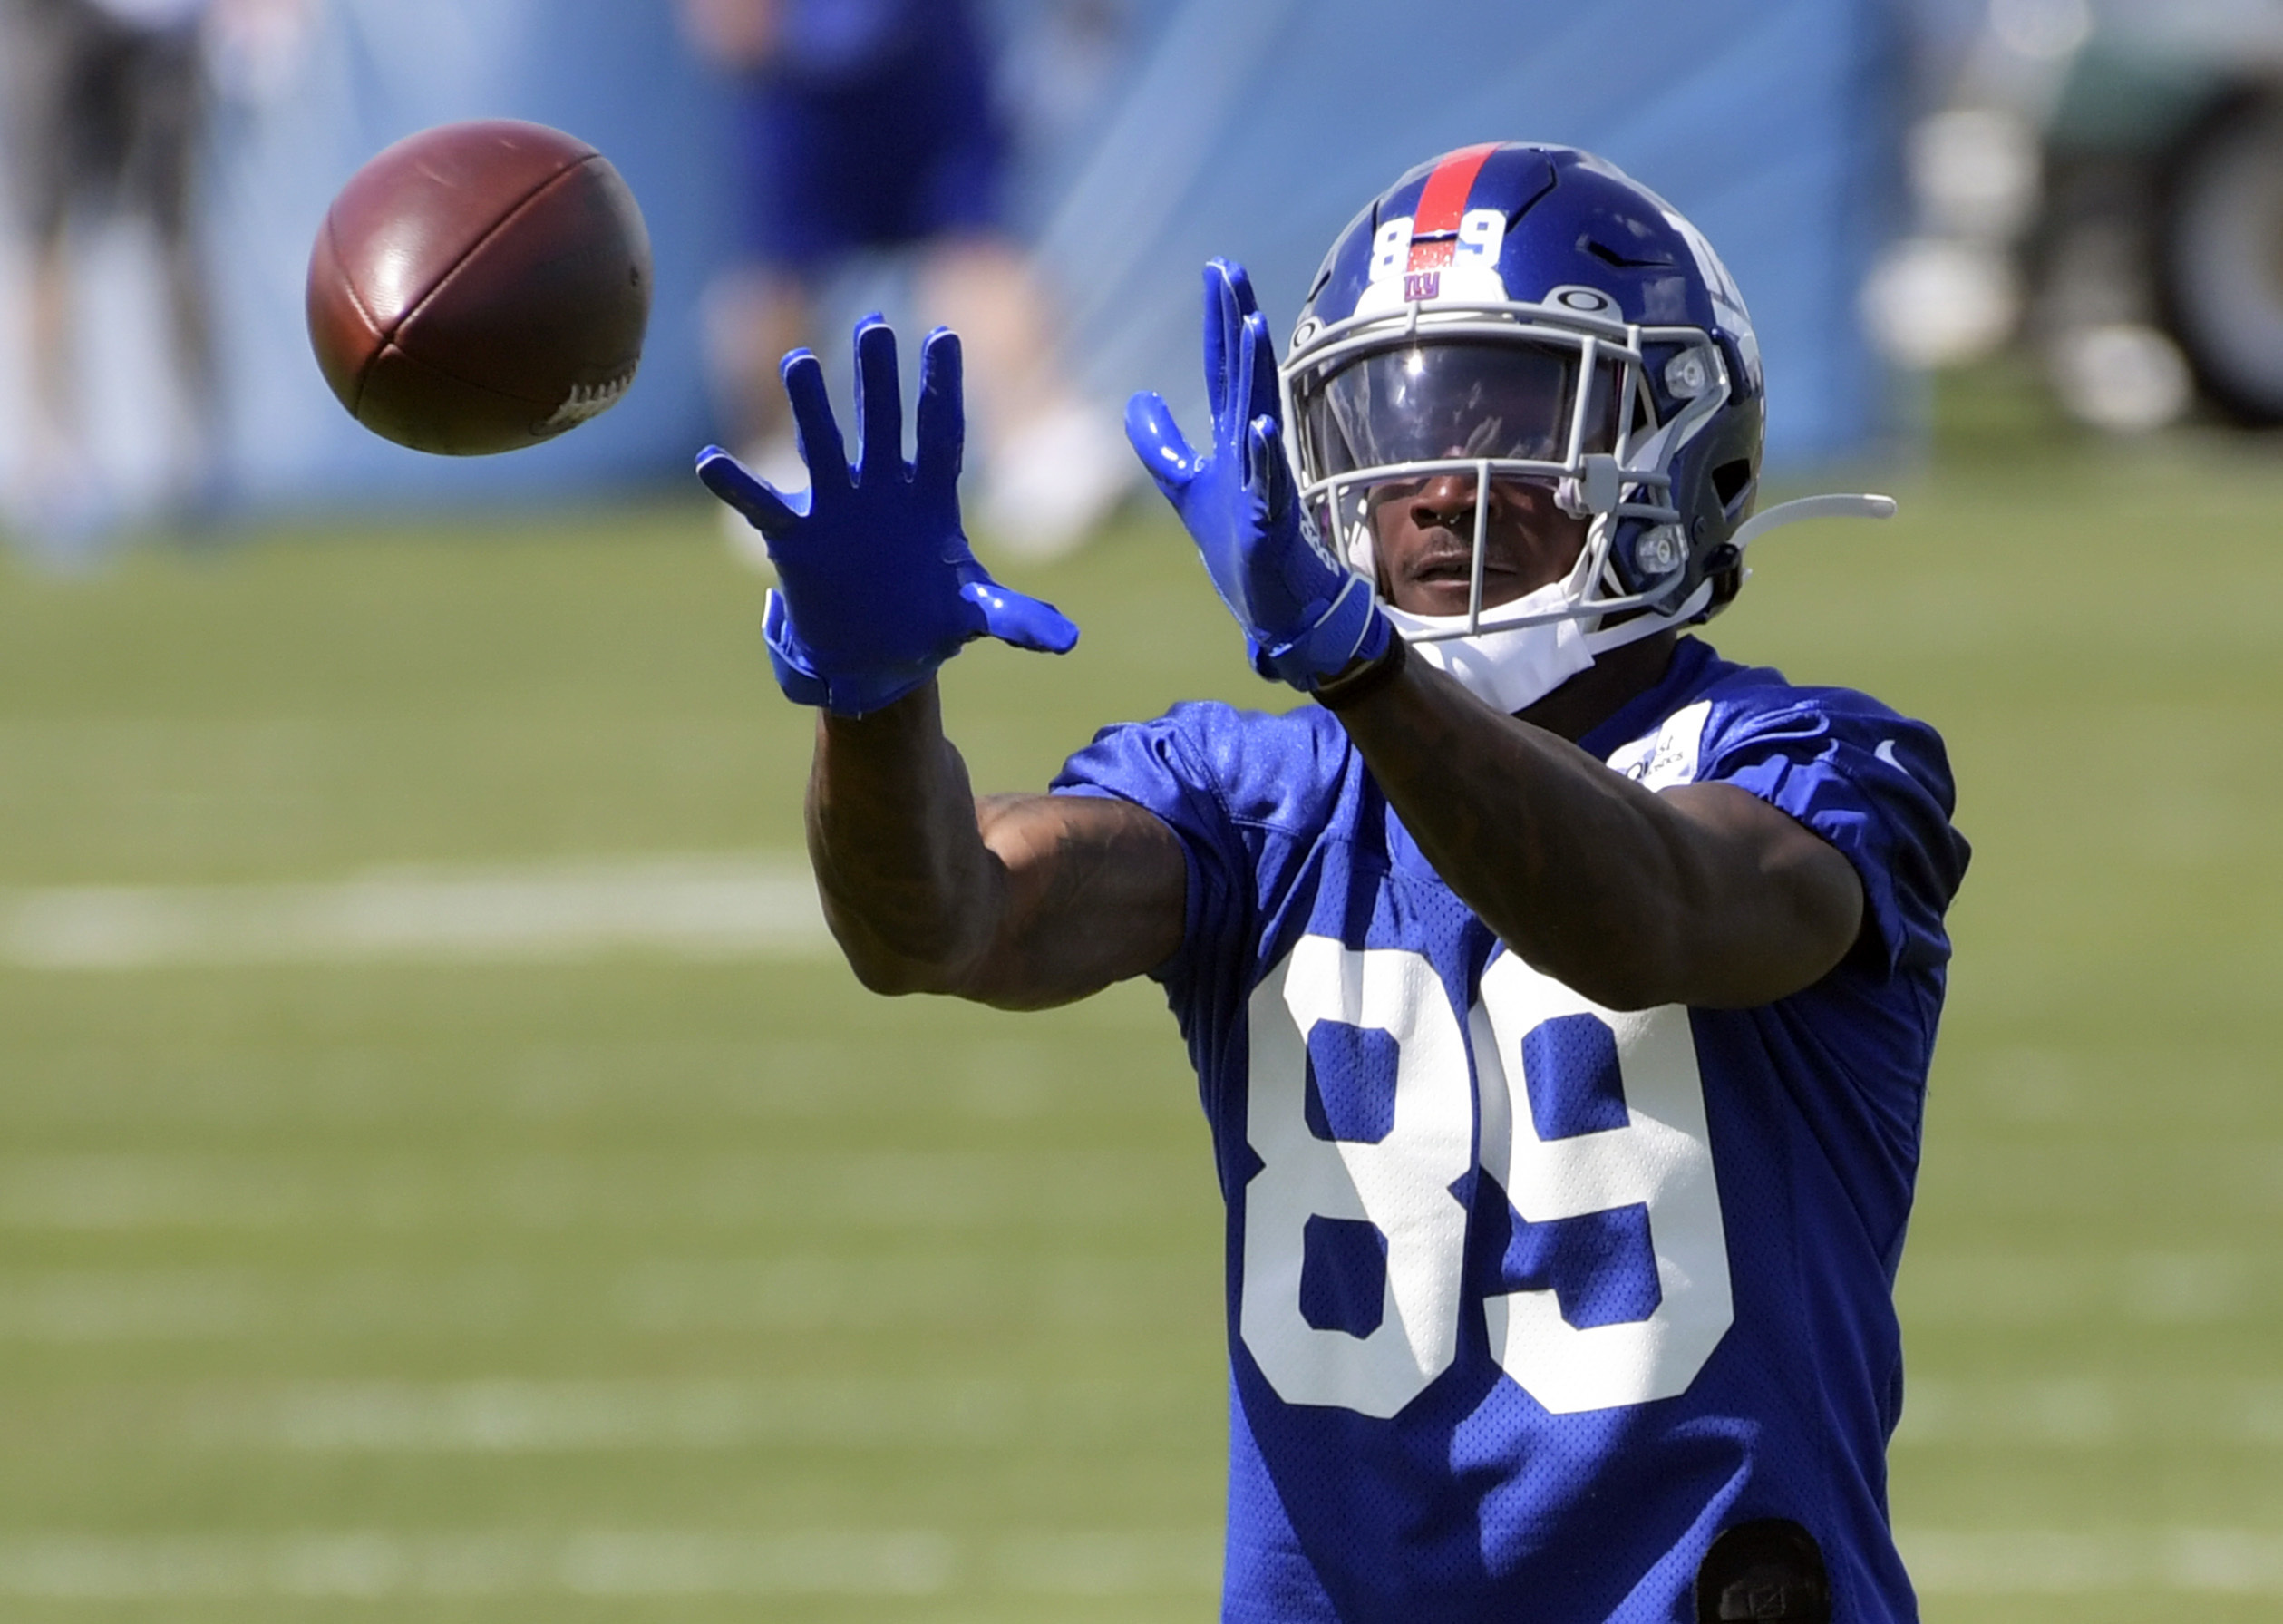 Kadarius Toney Frustrated By Role With Giants: 'S--t Just Be Lame to Me'